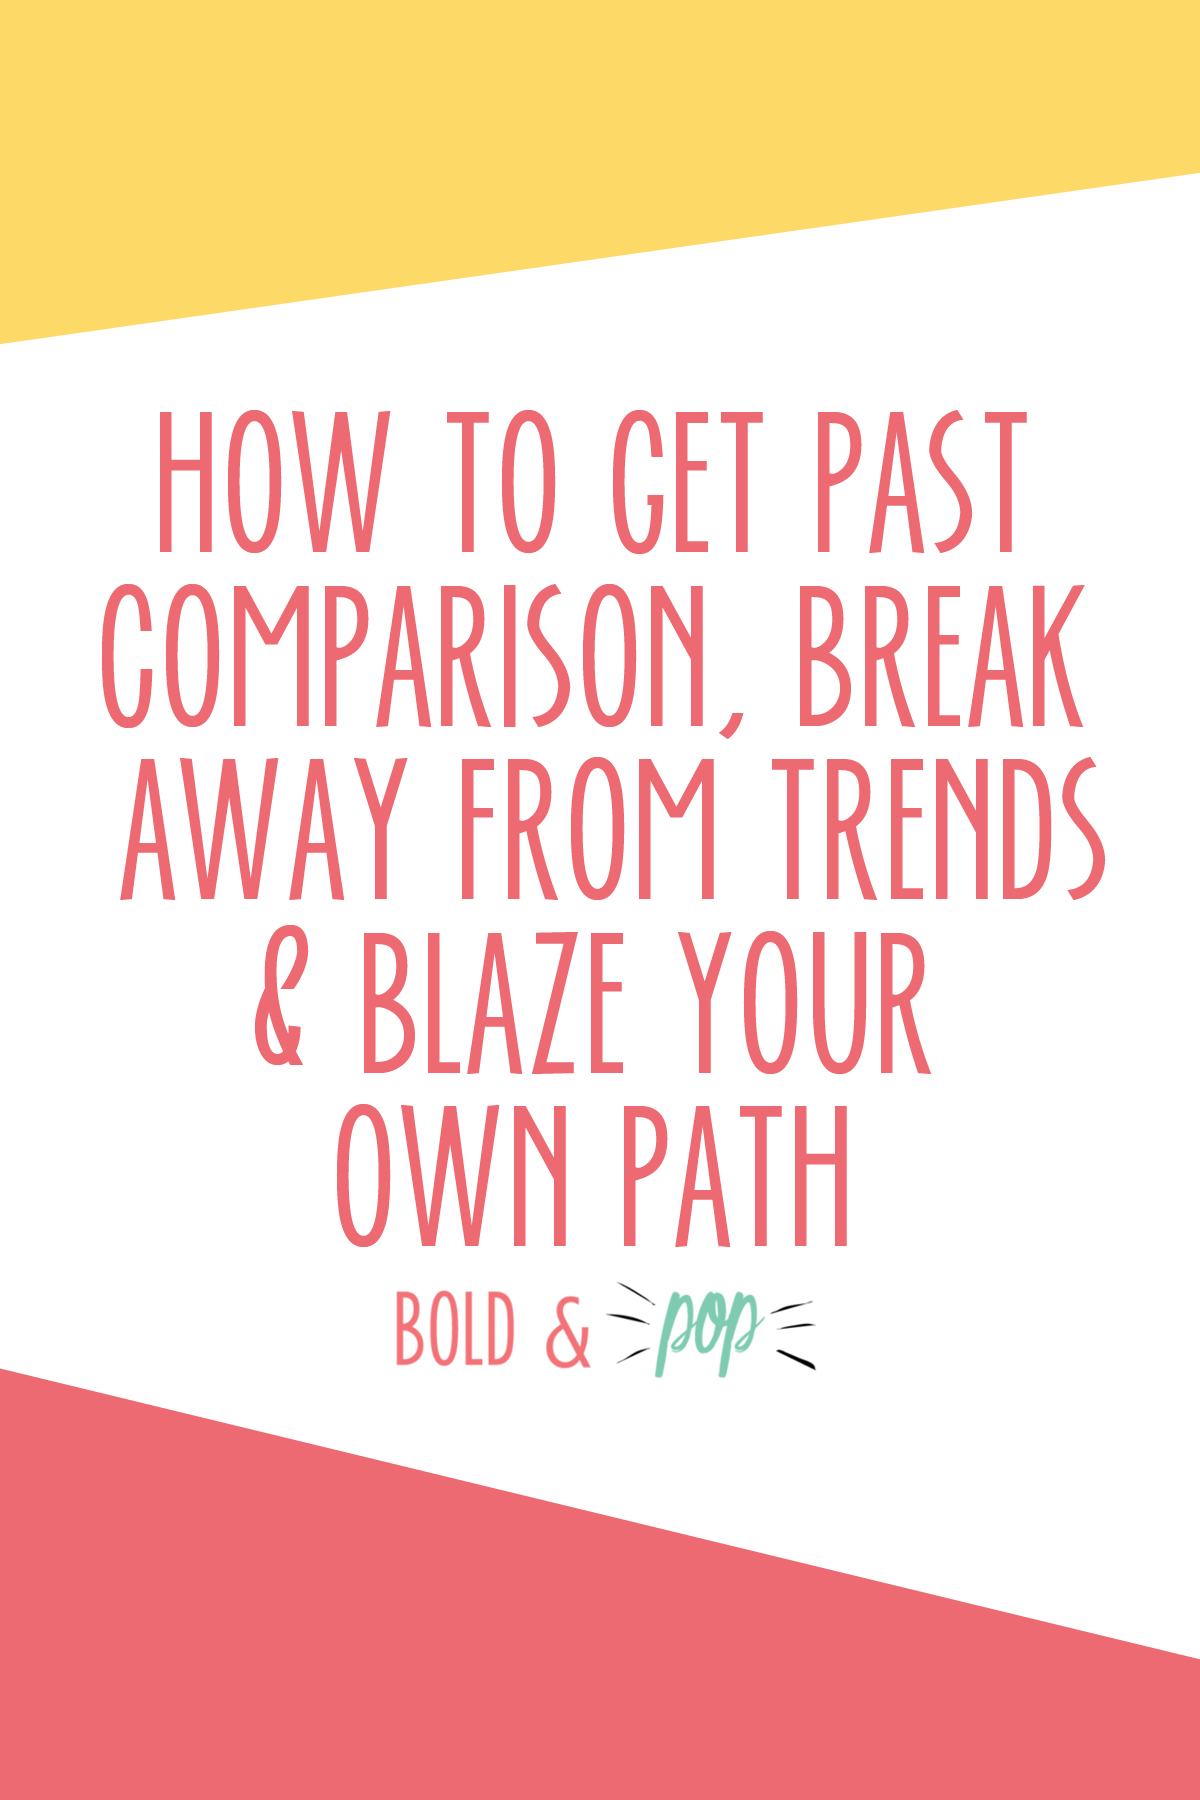 How to Get Past Comparison, Break Away From Trends & Blaze Your Own Path.jpg